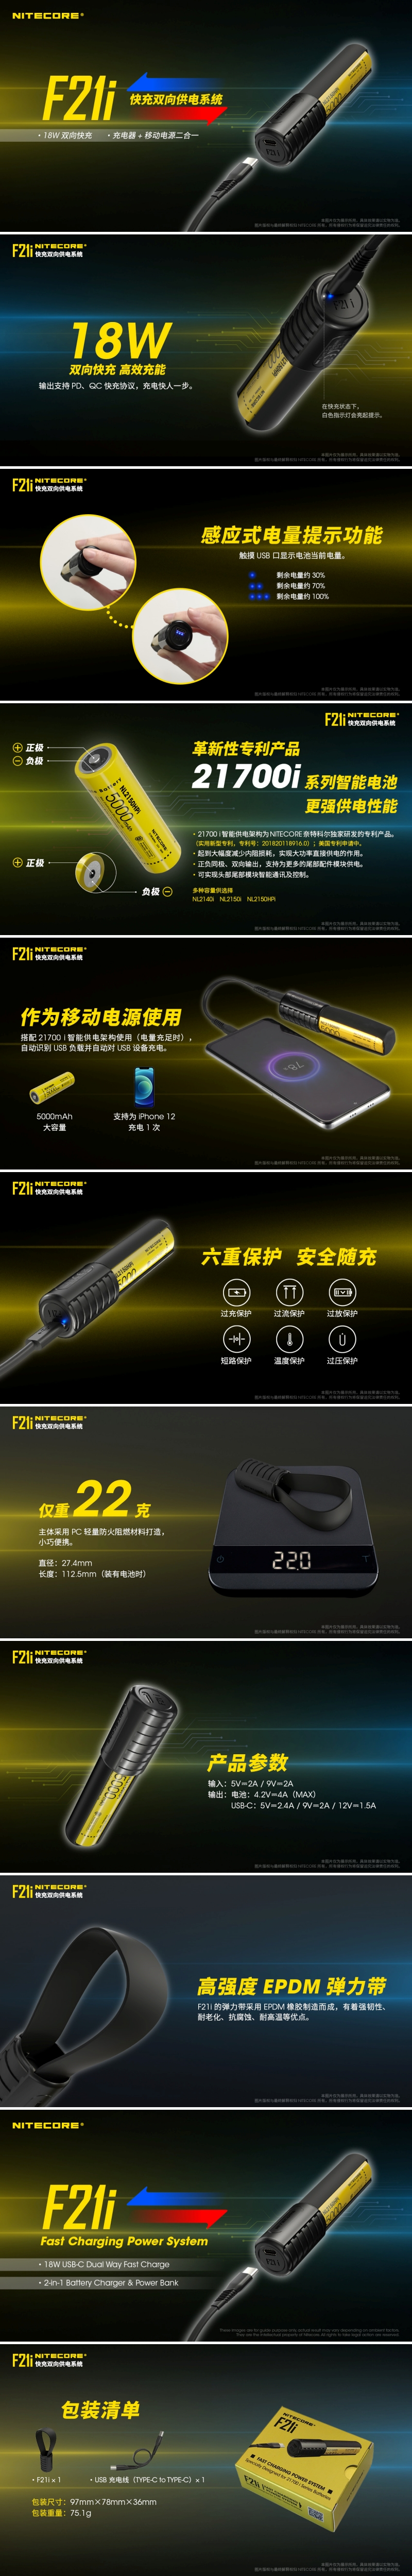 NITECORE F21i iSeries Battery Charger and USB-C Powerbank